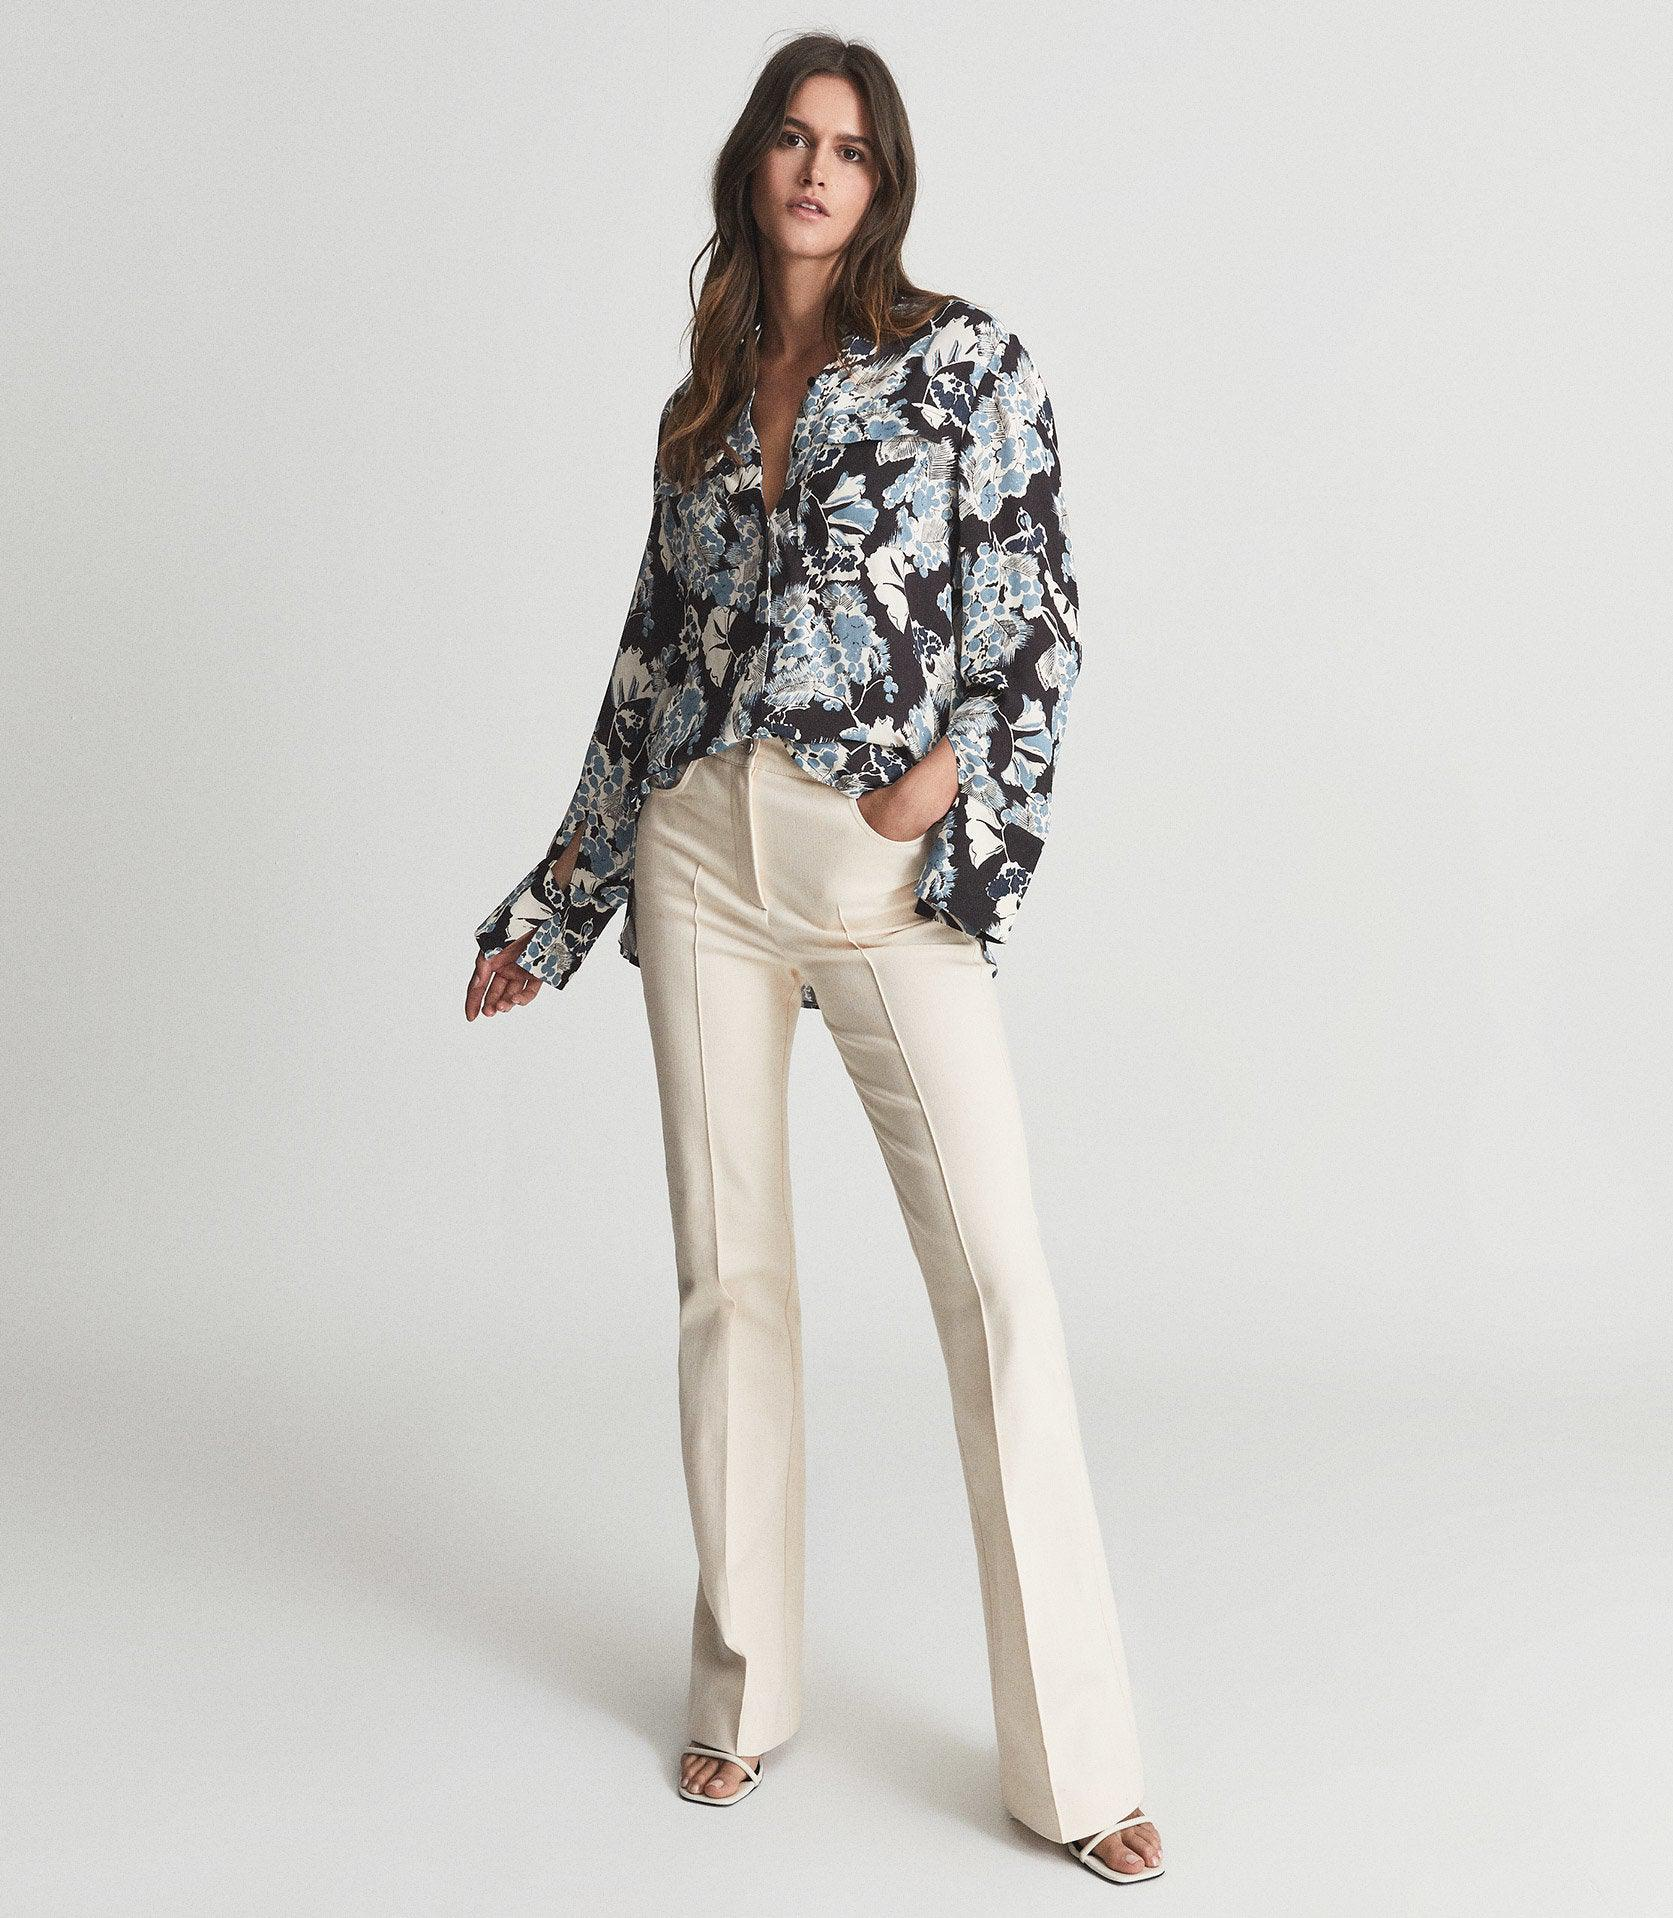 MIKA - FLORAL PRINTED BLOUSE